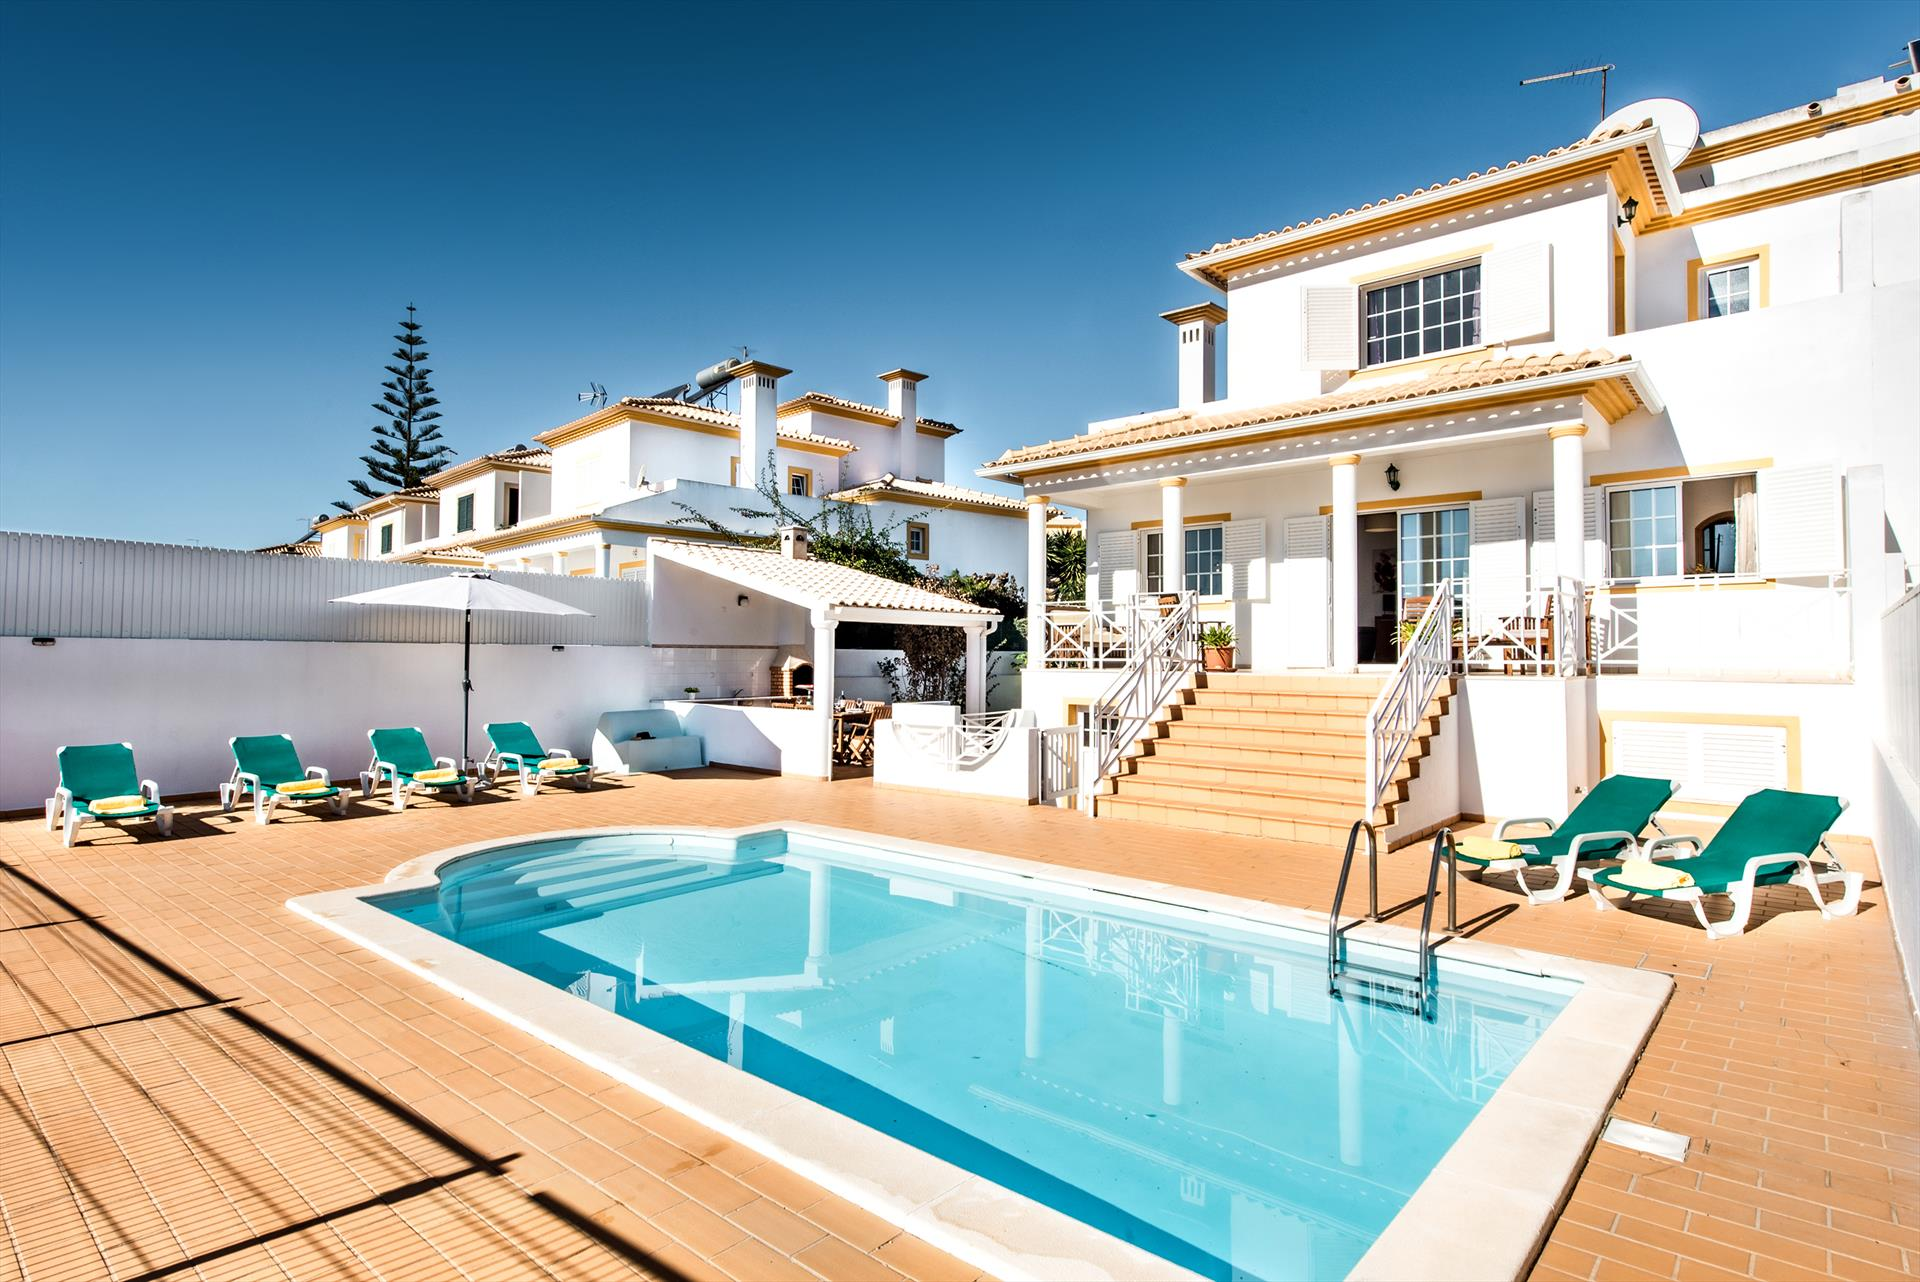 Albufeira Villa LS101, Lovely and comfortable villa in Albufeira, on the Algarve, Portugal  with private pool for 6 persons.....